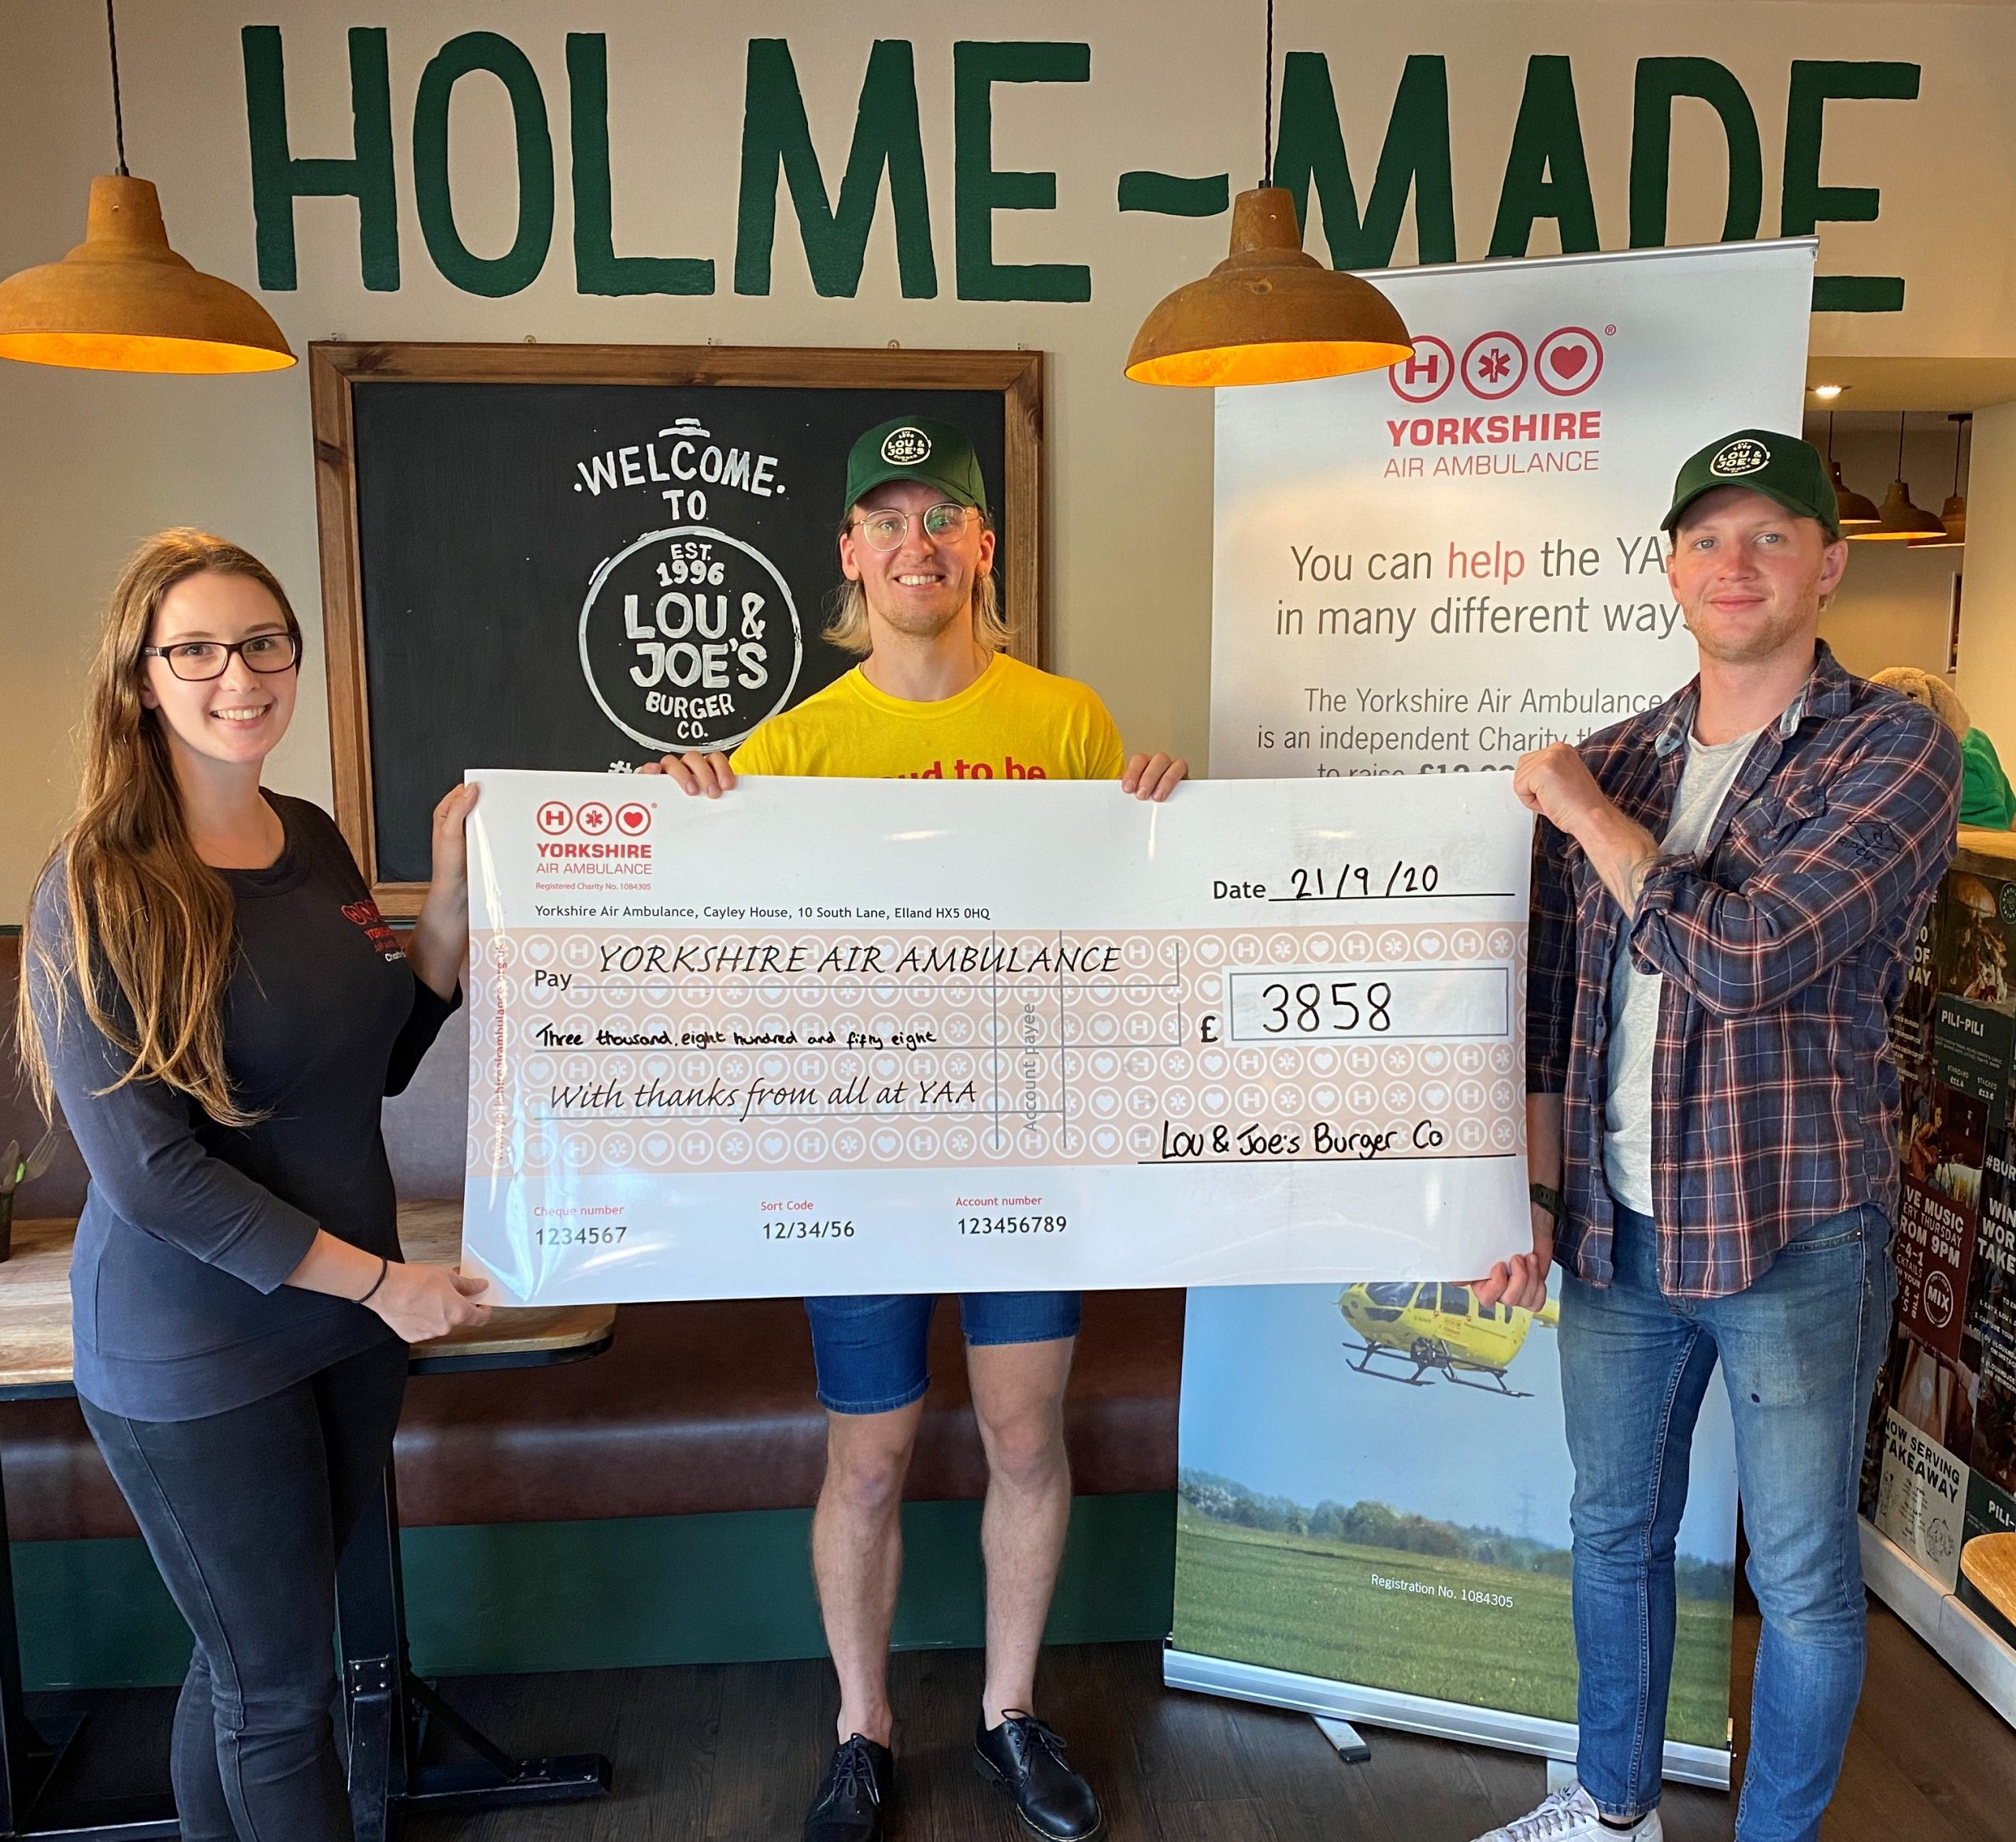 Lou & Joe's Burger Co with a cheque for the YAA